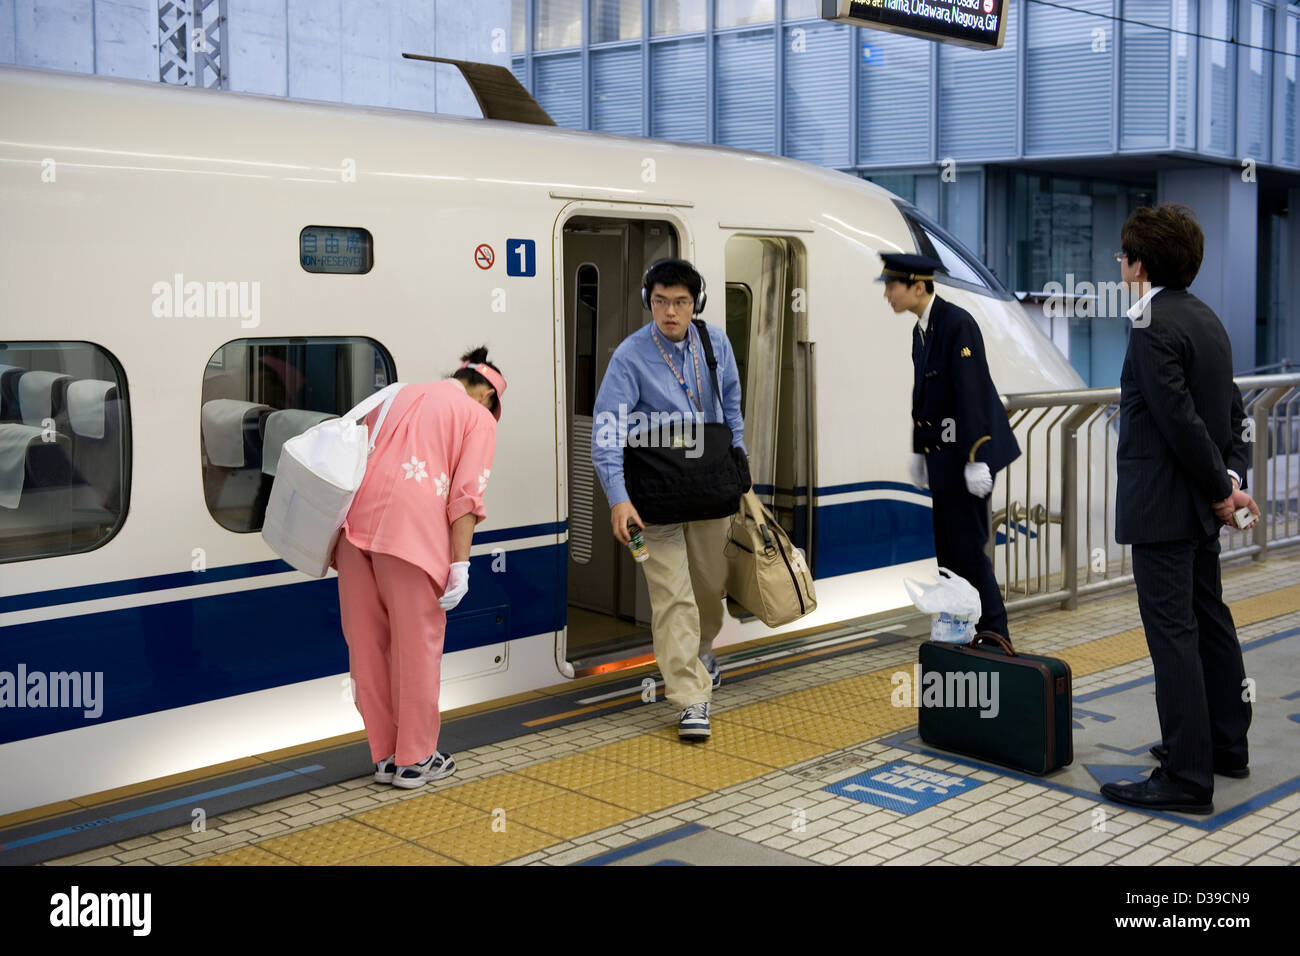 Showing respect, a cleaning woman bows to a passenger getting off a JR shinkansen bullet train at platform in Tokyo - Stock Image